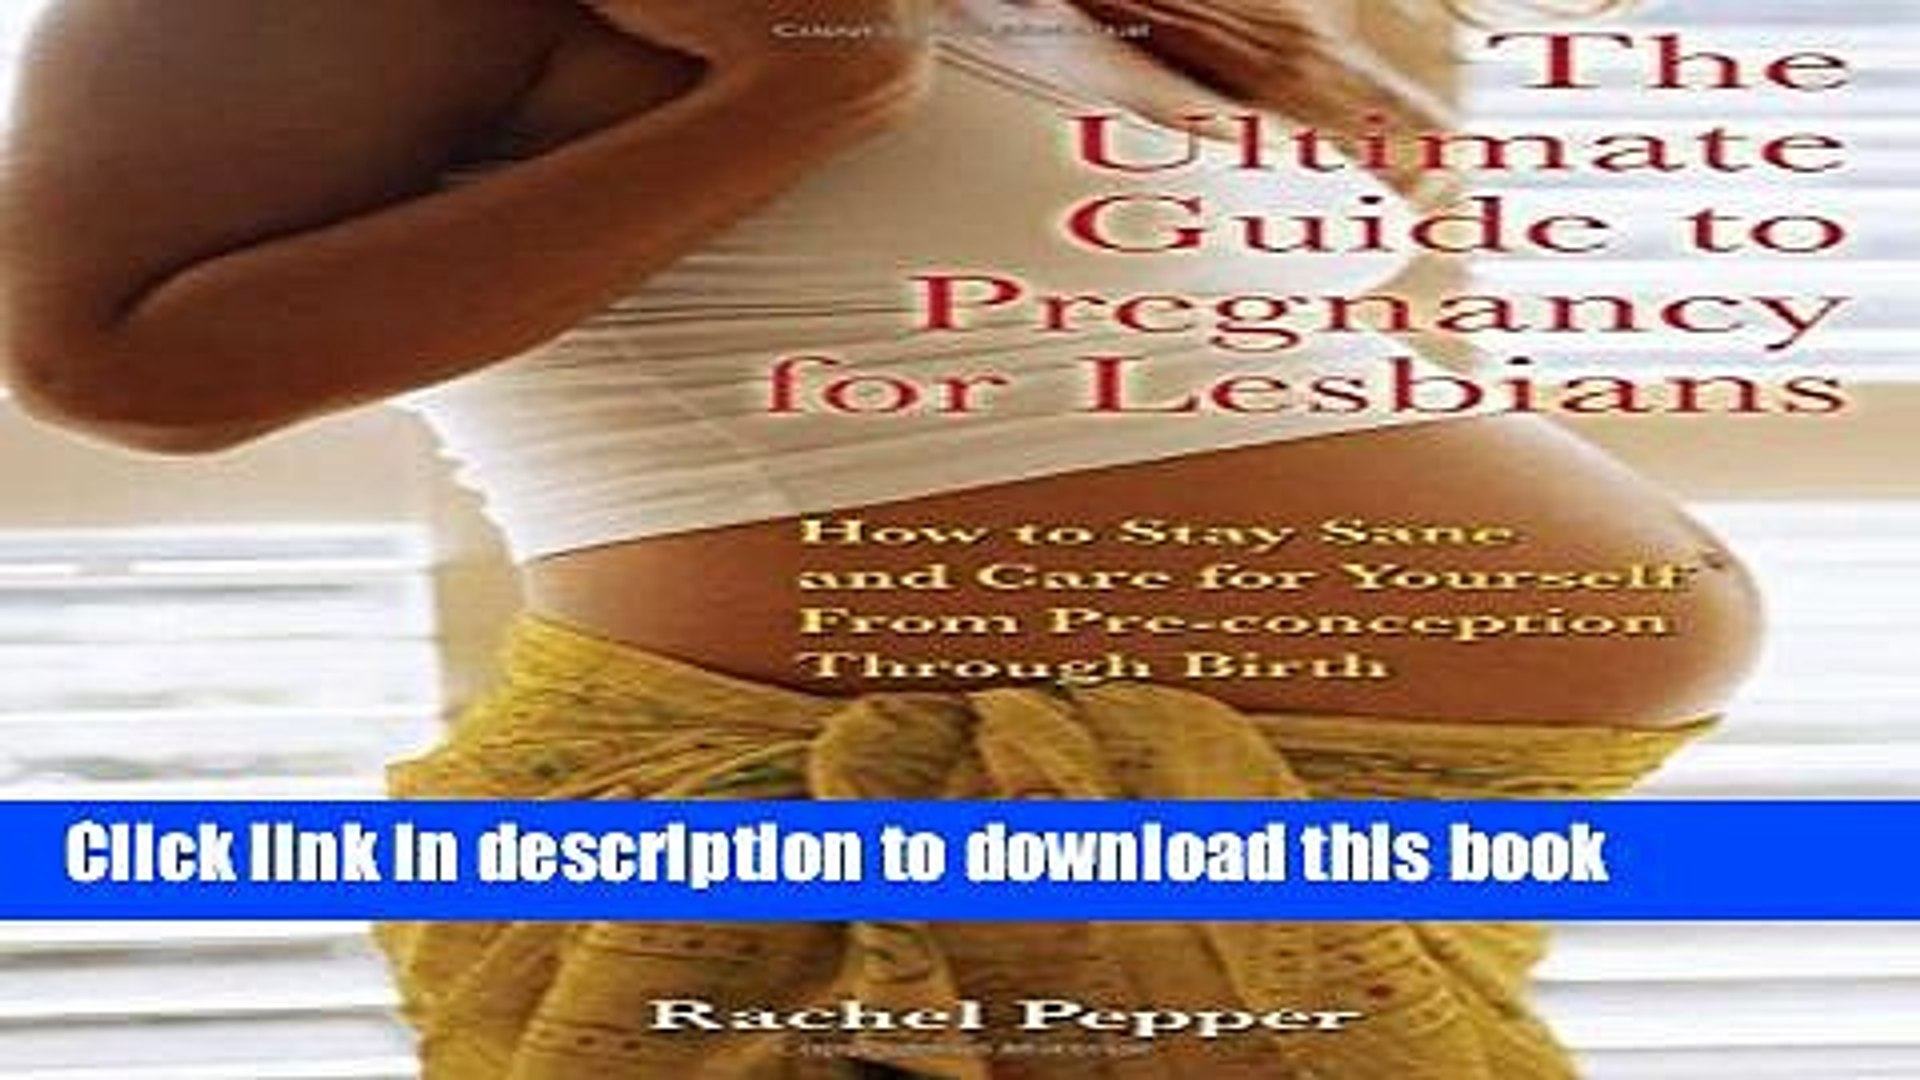 The Ultimate Guide to Pregnancy for Lesbians How to Stay Sane and Care for Yourself from Pre-conception Through Birth